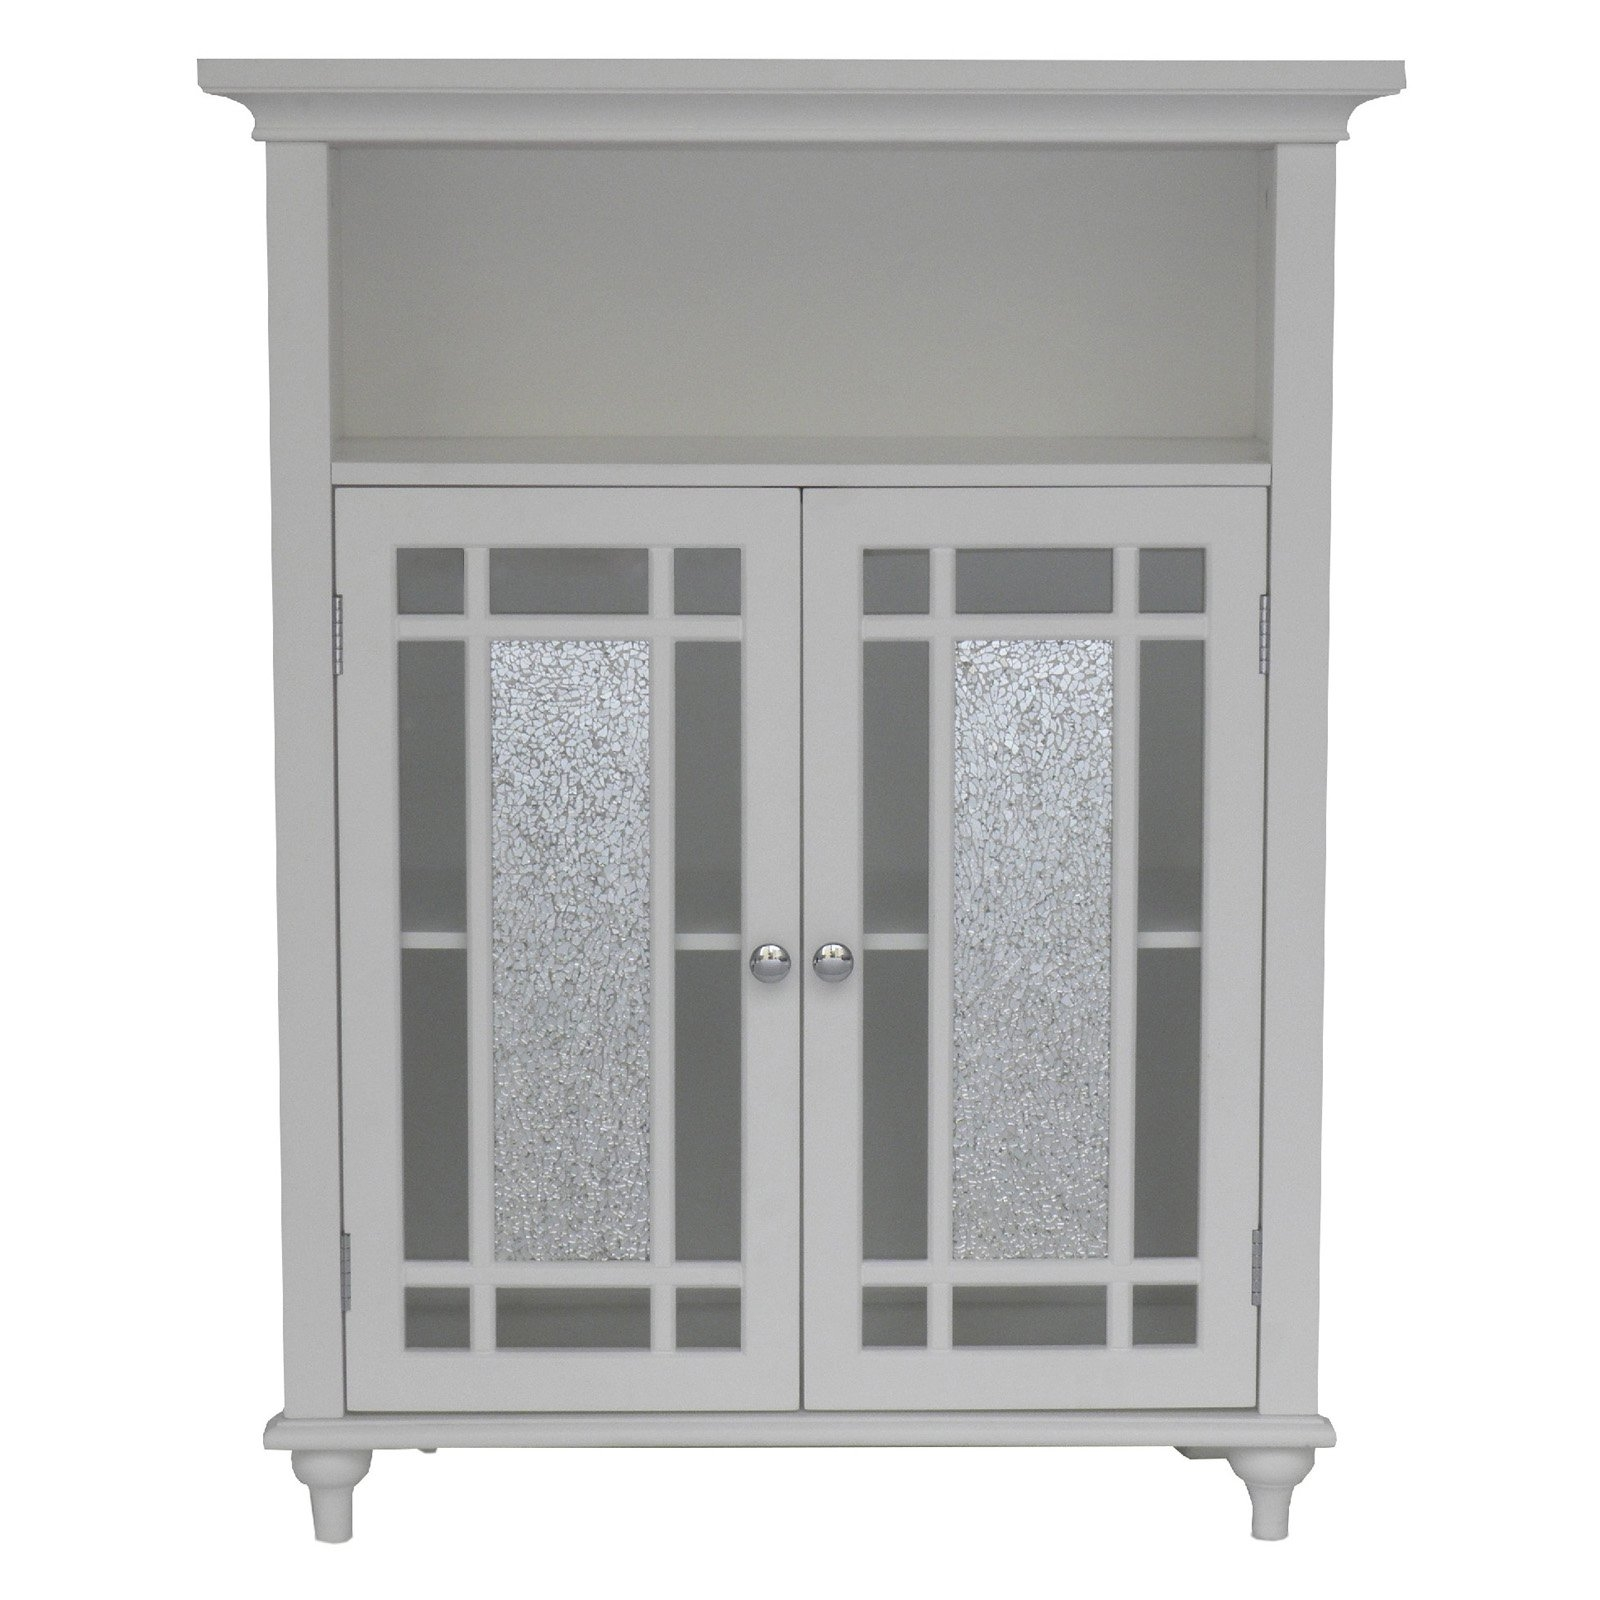 Permalink to White Bathroom Floor Cabinet Glass Doors